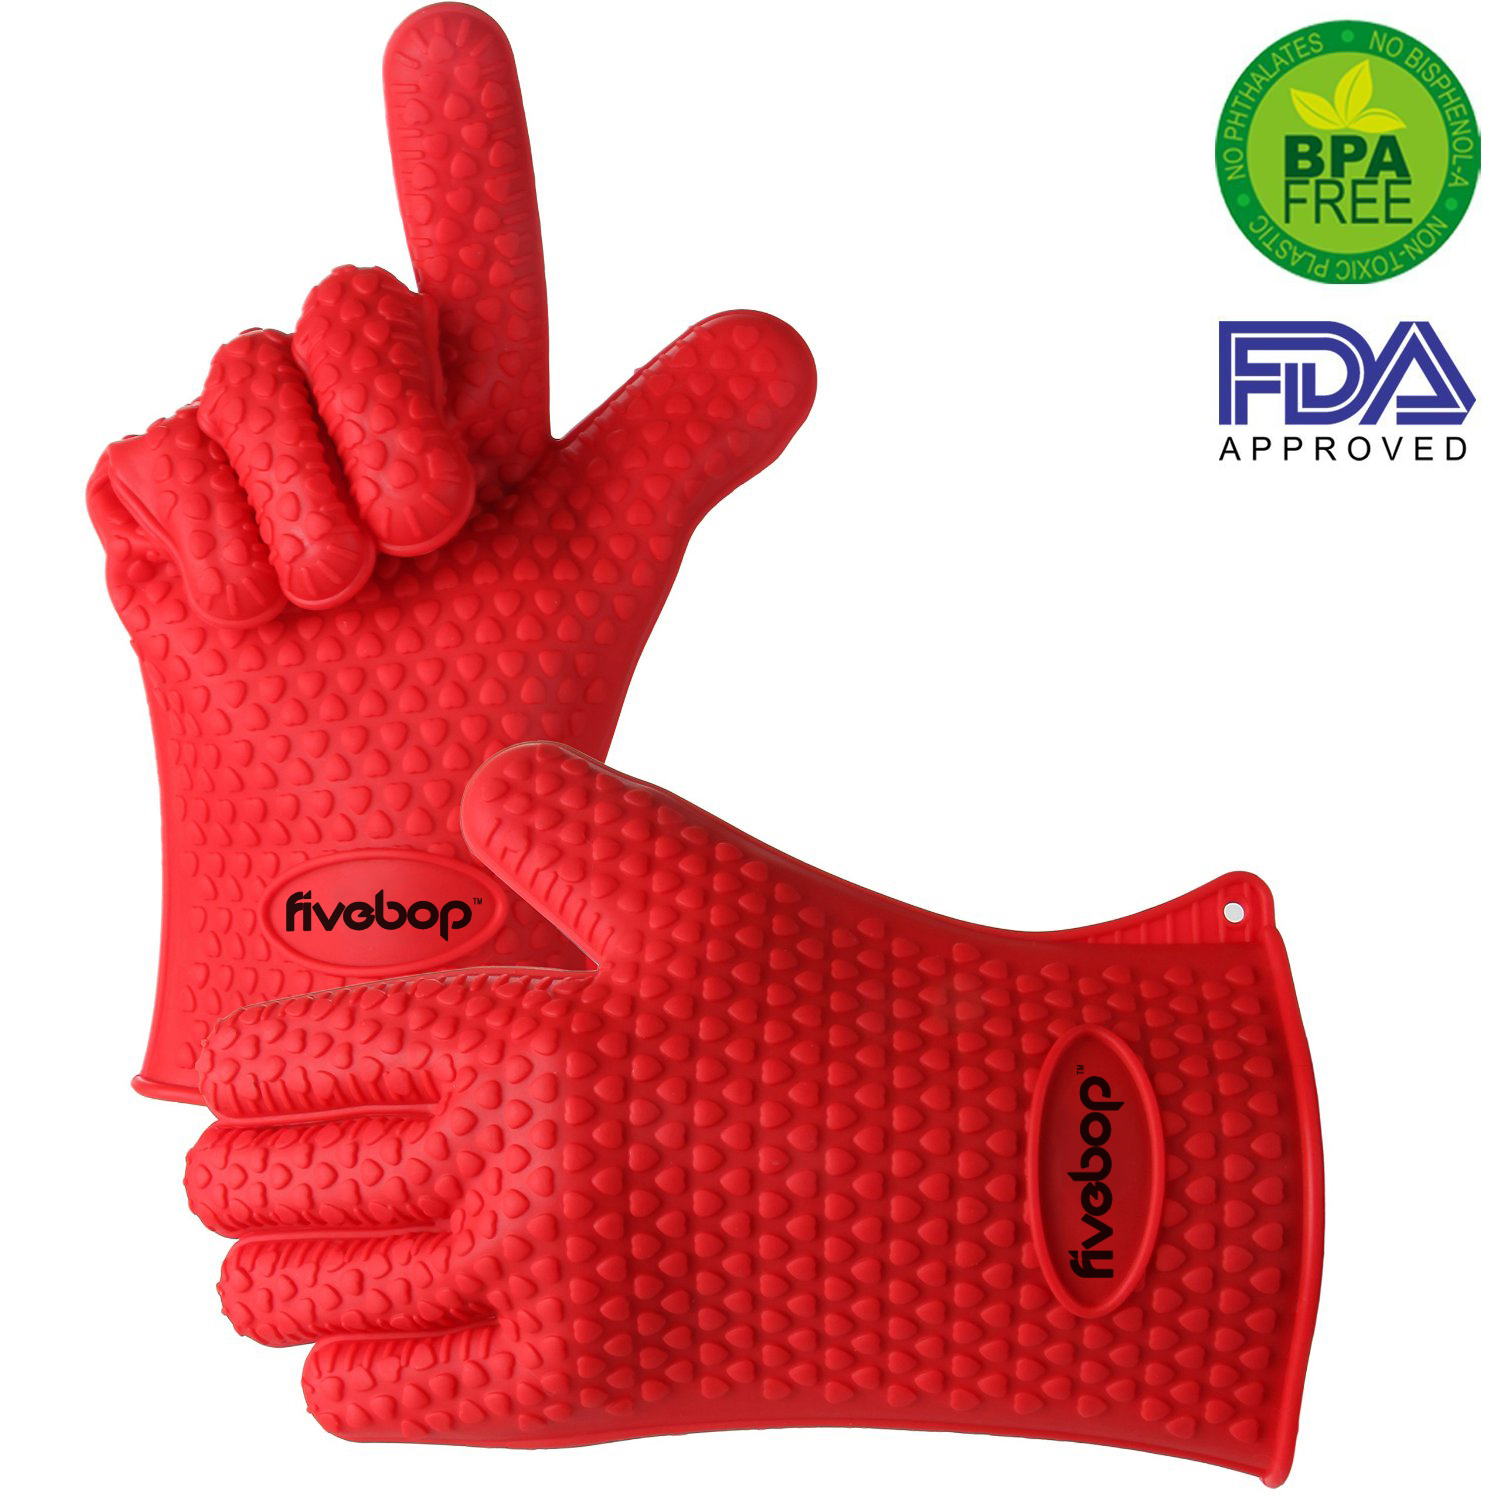 Fivebop™ Silicone Oven Gloves with Fingers - BBQ Oven Mitts - Red